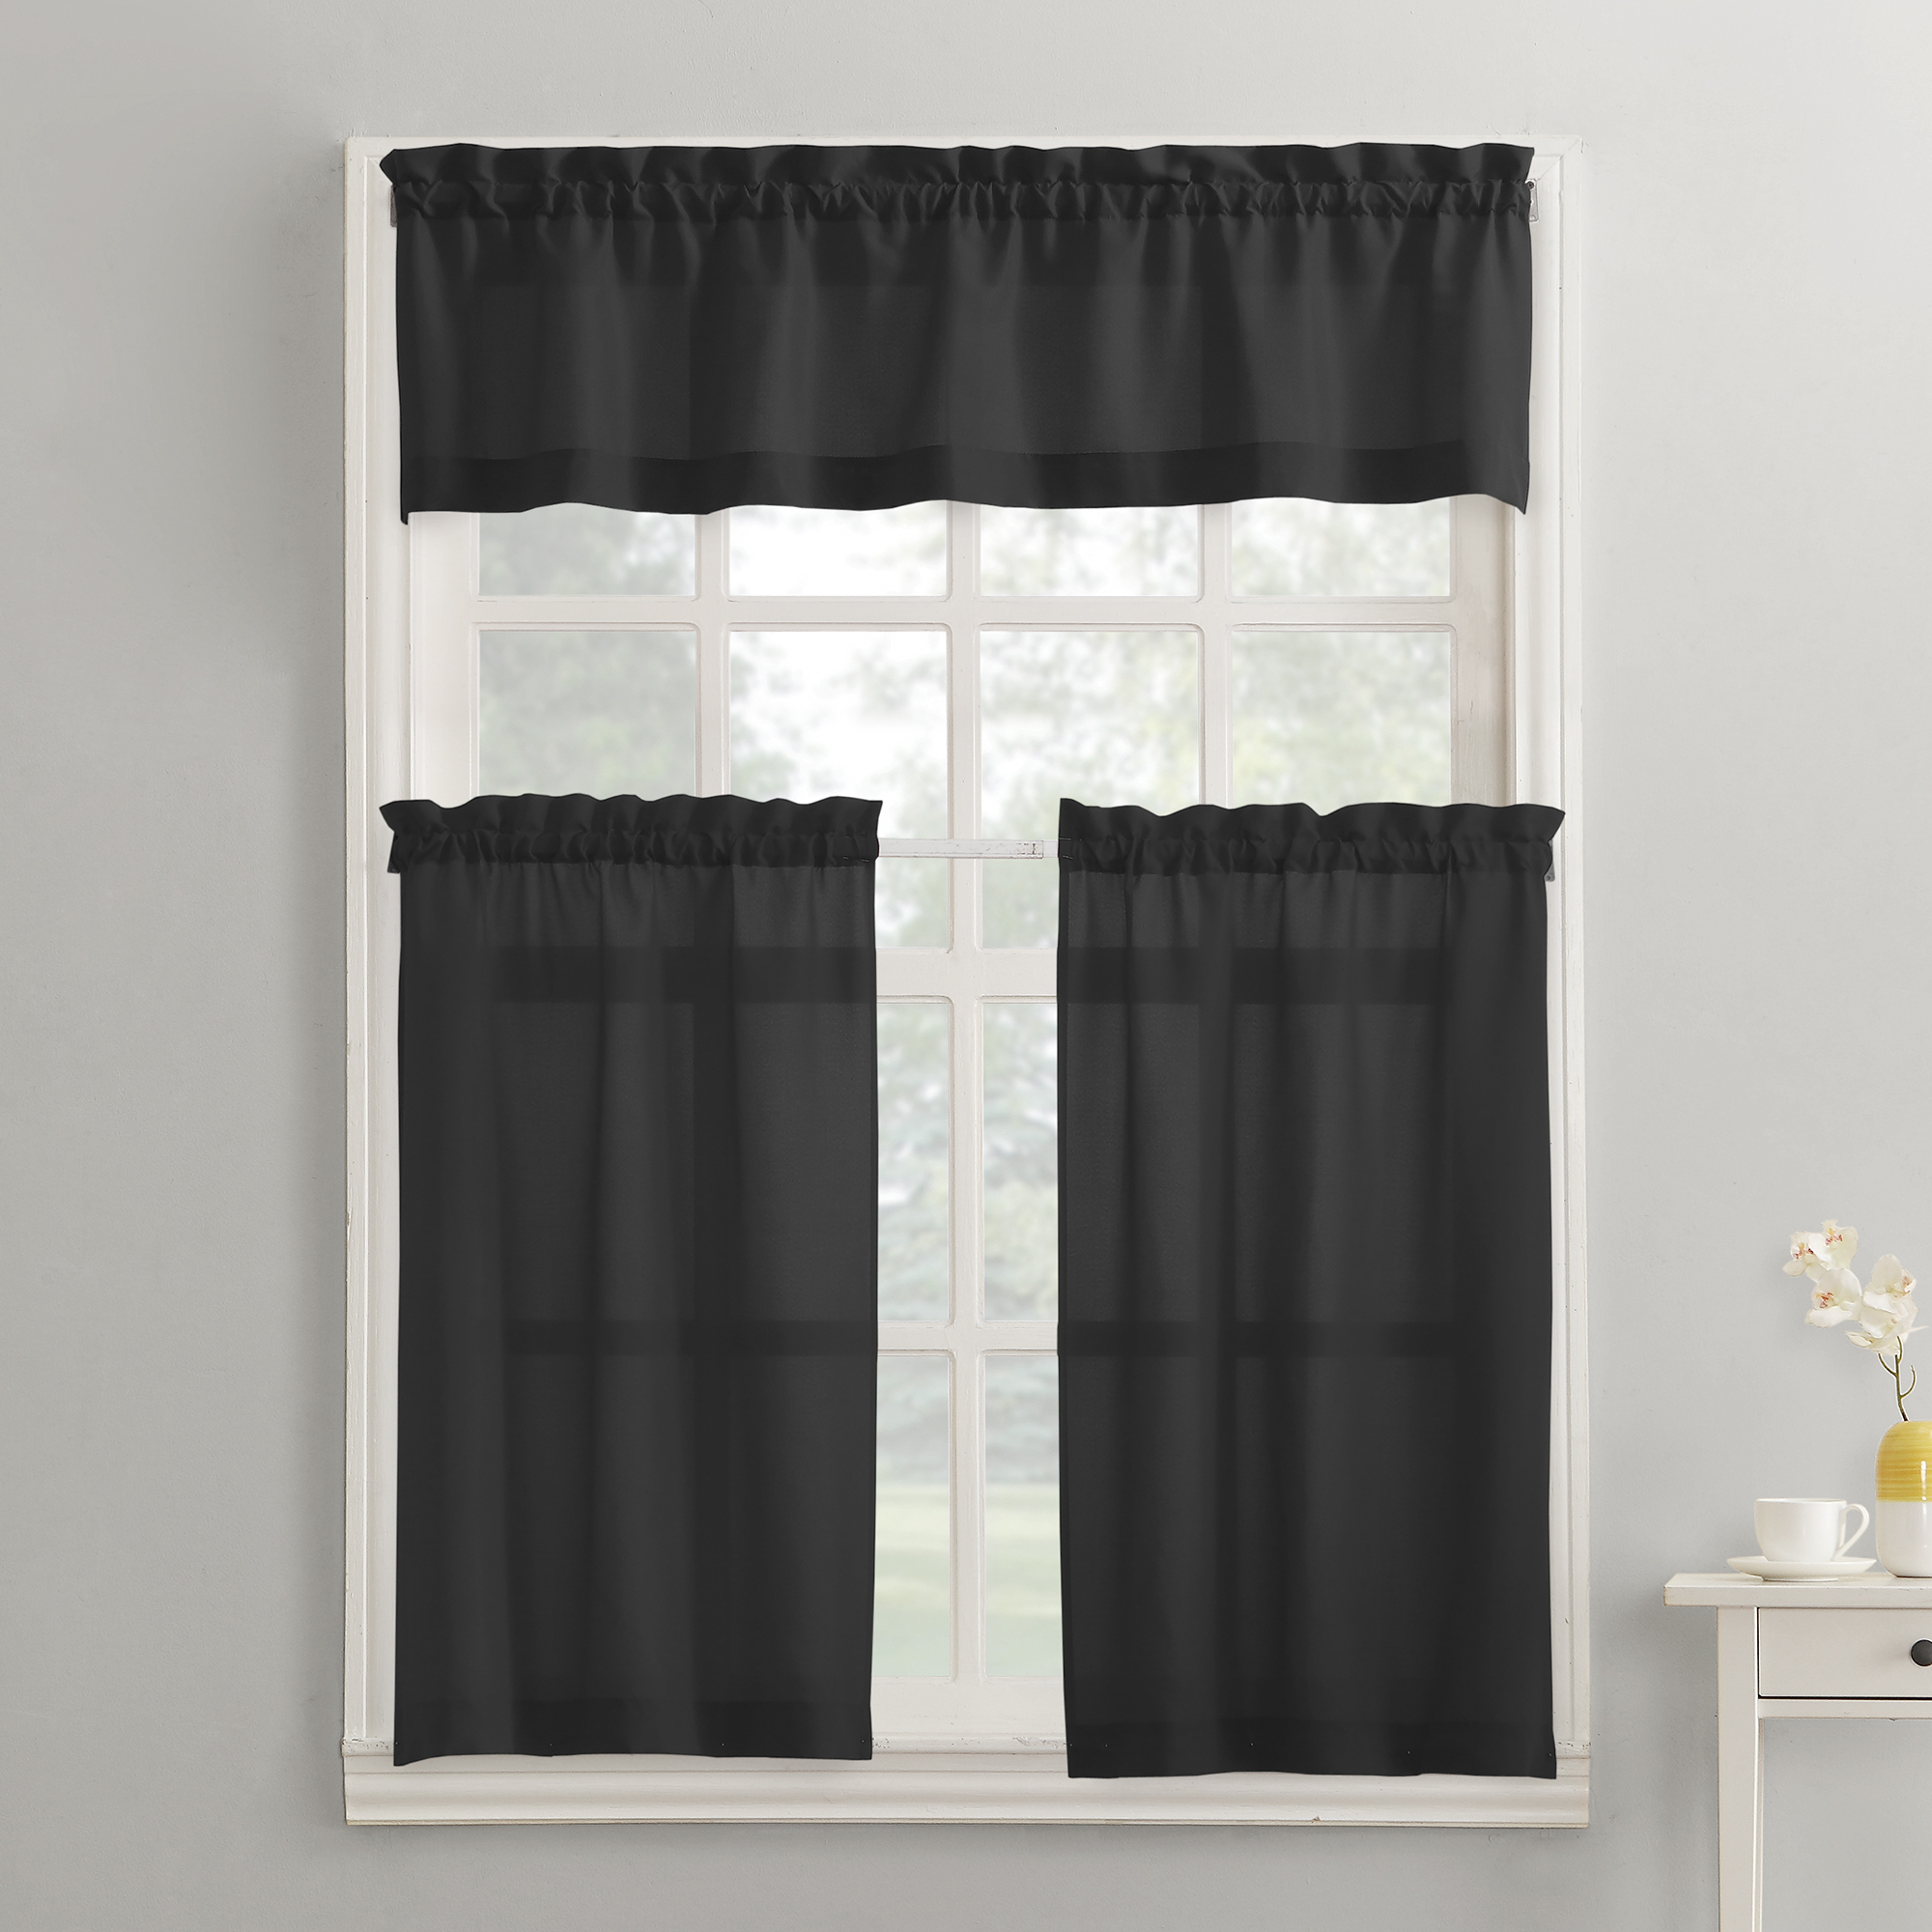 Mainstays Solid 3 Piece Kitchen Curtain Tier And Valance Set Inside Coastal Tier And Valance Window Curtain Sets (View 17 of 20)